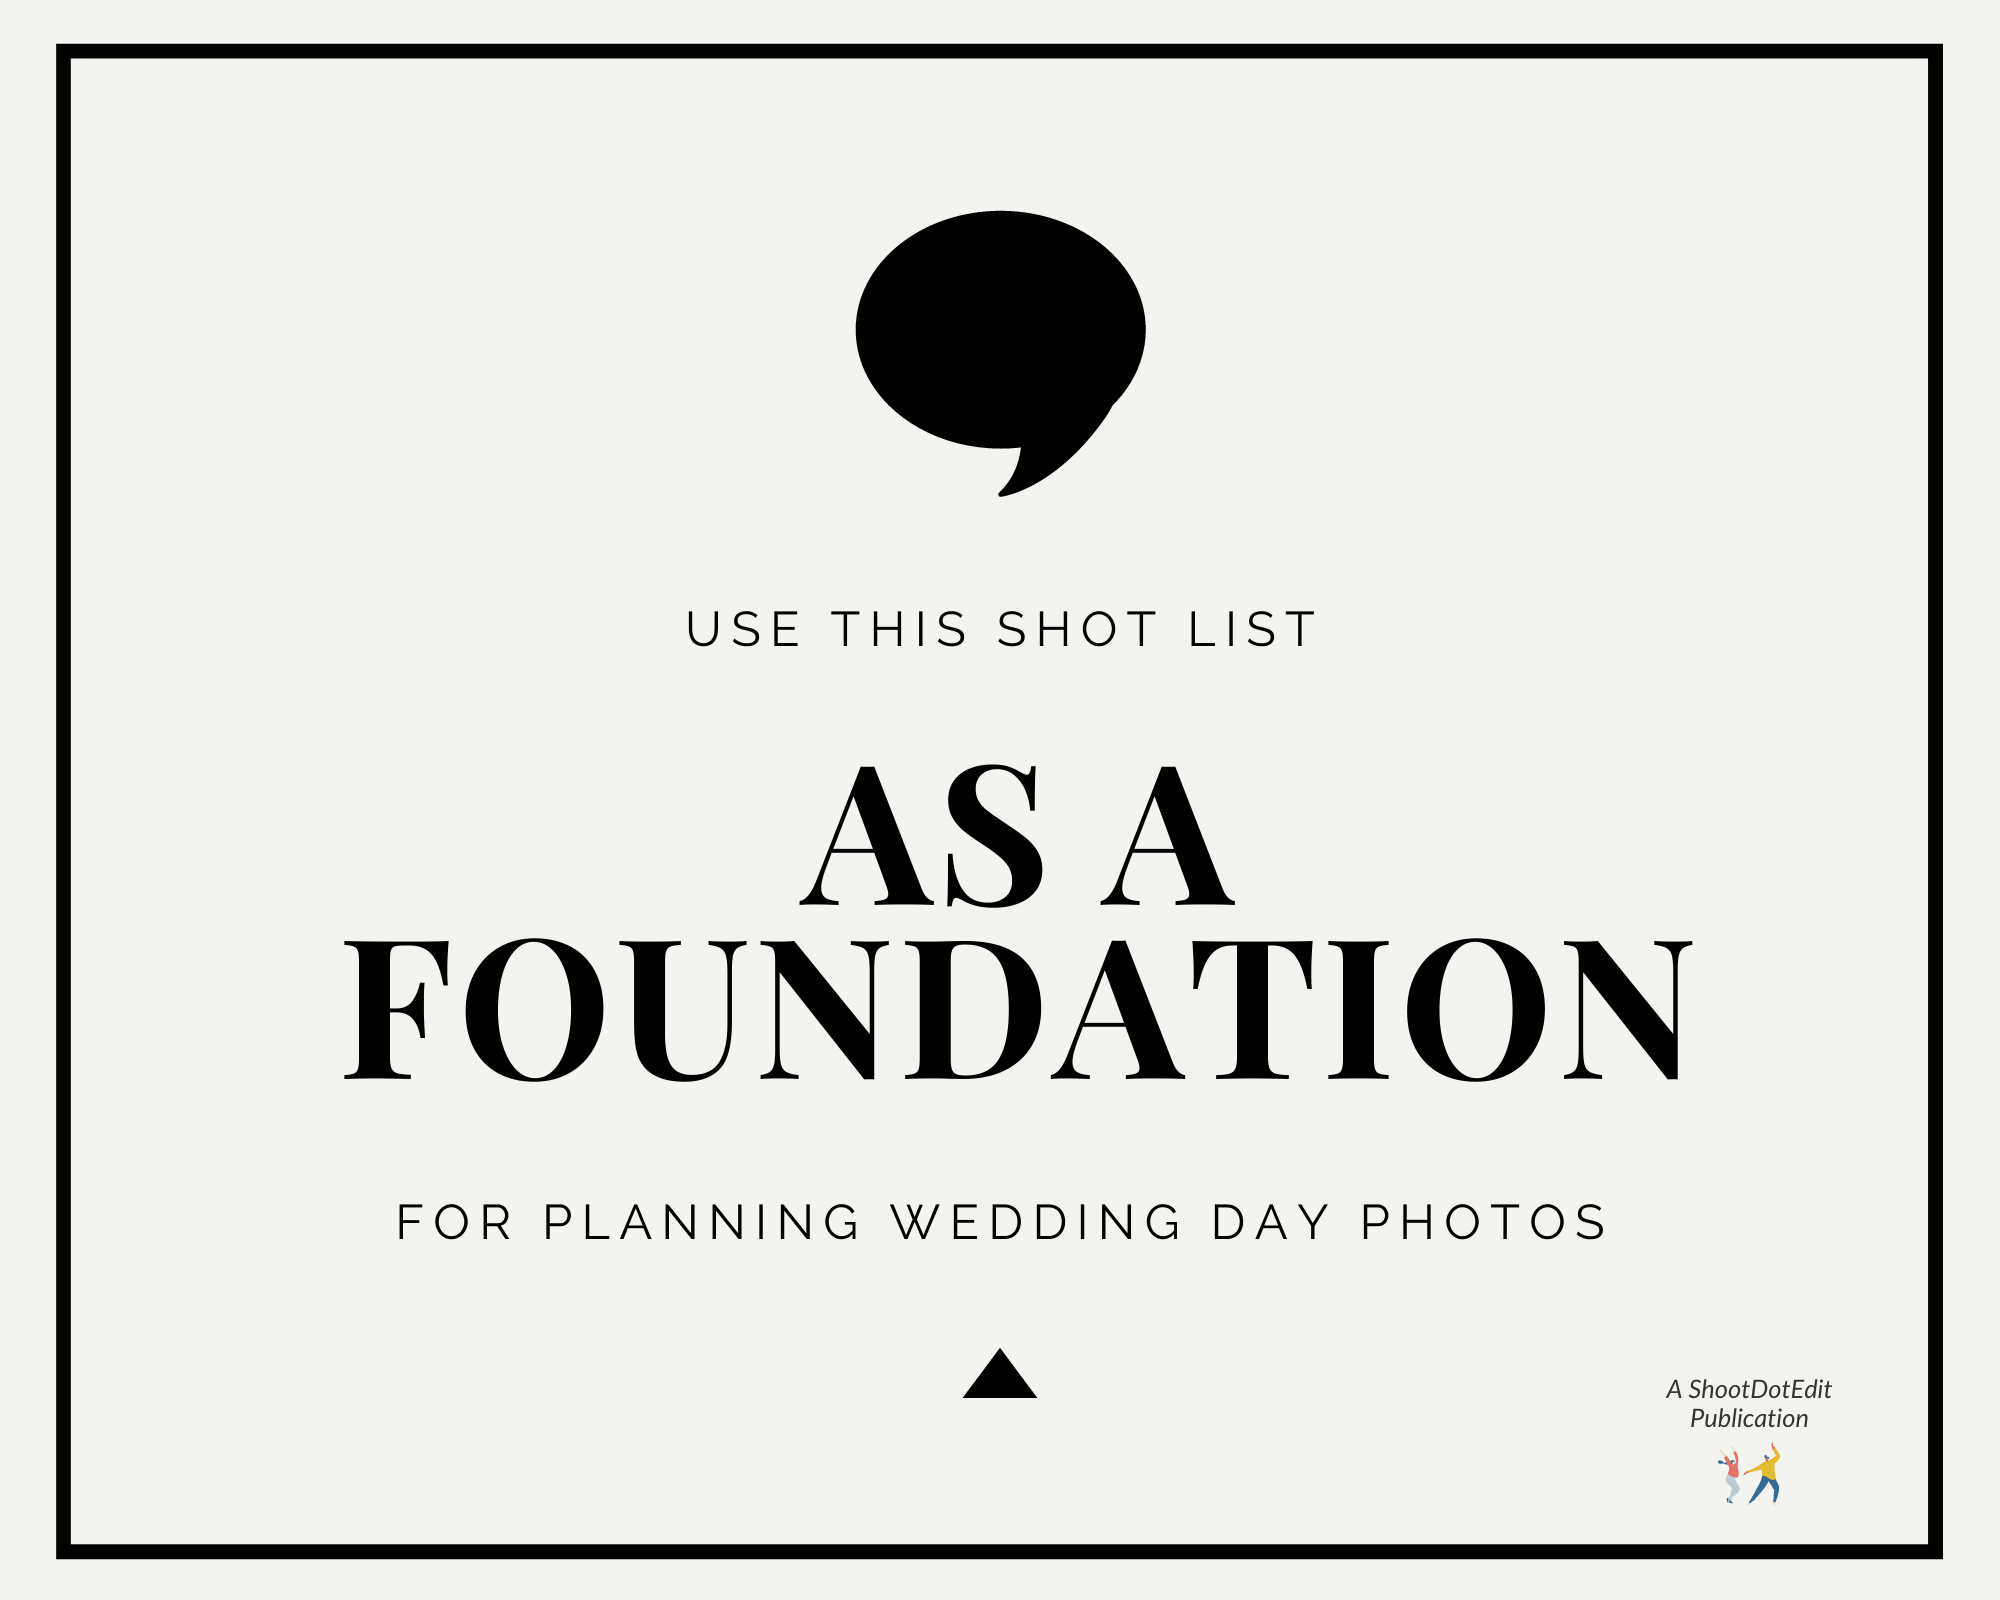 Infographic stating use this wedding photography shot list as a foundation for planning wedding day photos